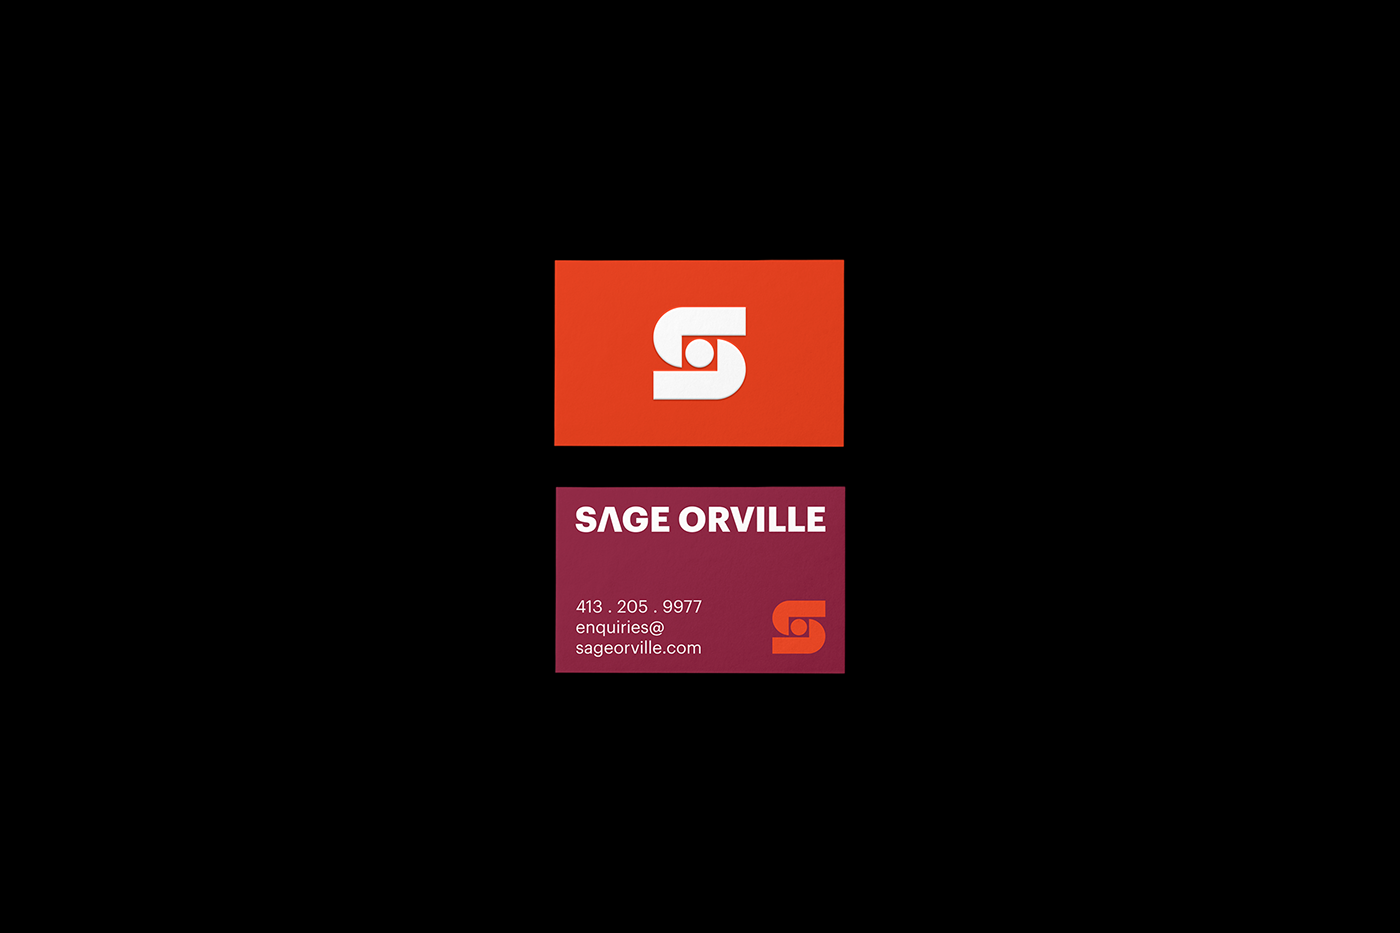 Sage Orville businesscard